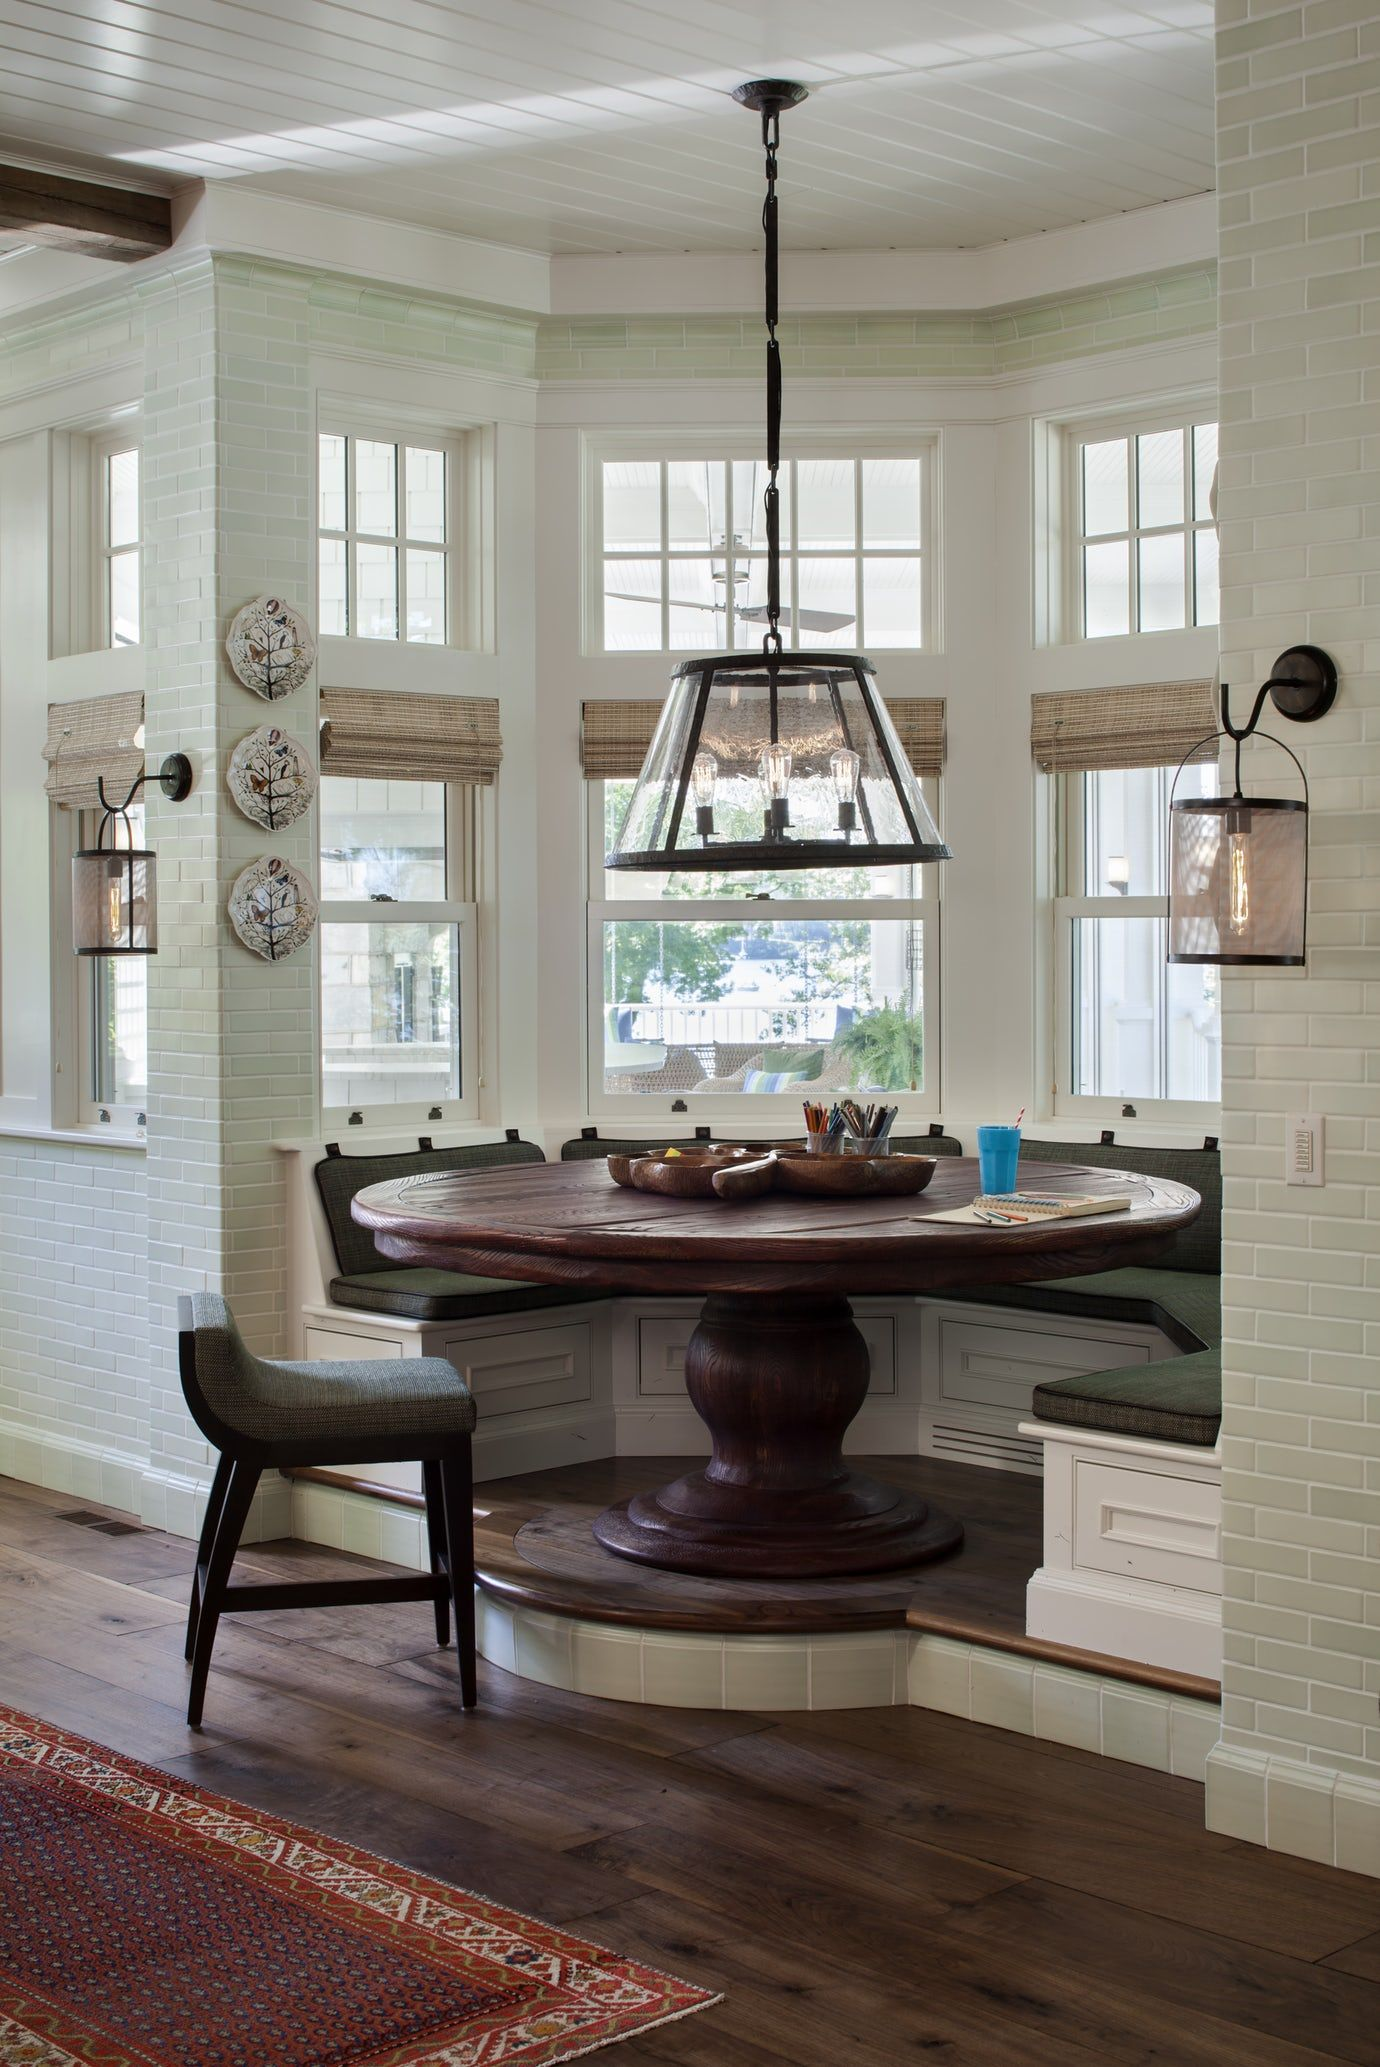 A Small Circular Dining Alcove Is Elevated For A